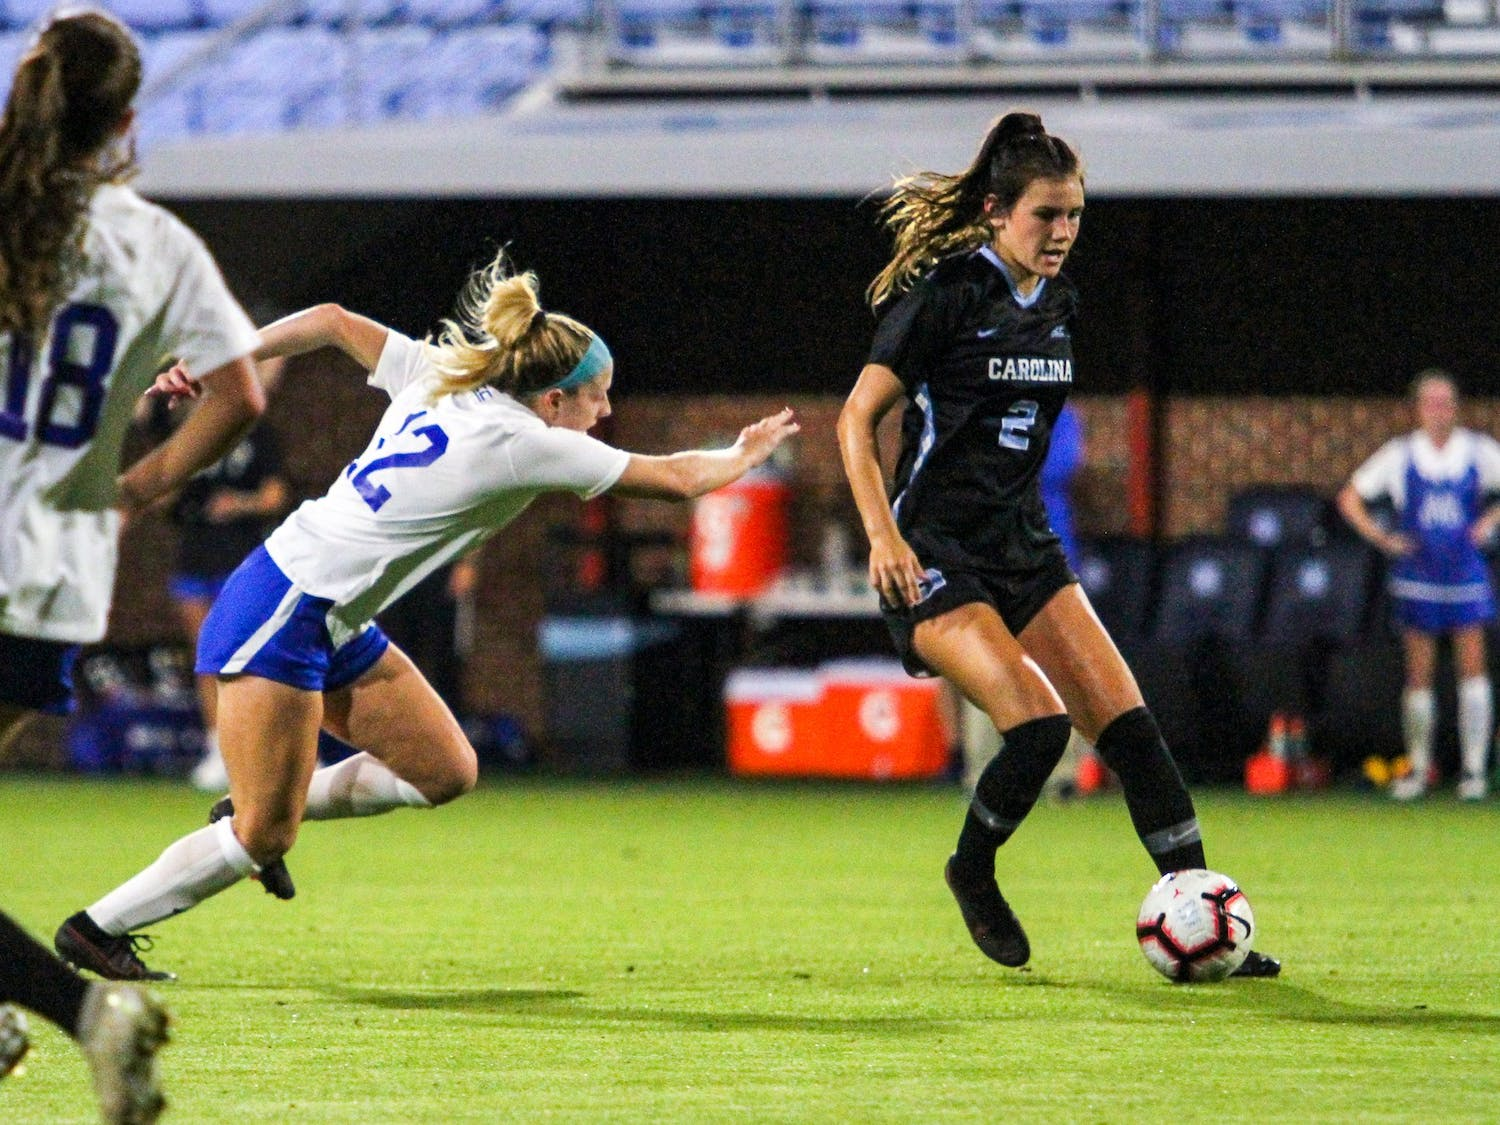 UNC freshman defender Abby Allen (2) dribbles downfield on Dorrance Field Oct. 23, 2020. The Tar Heels beat the Blue Devils 1-0.